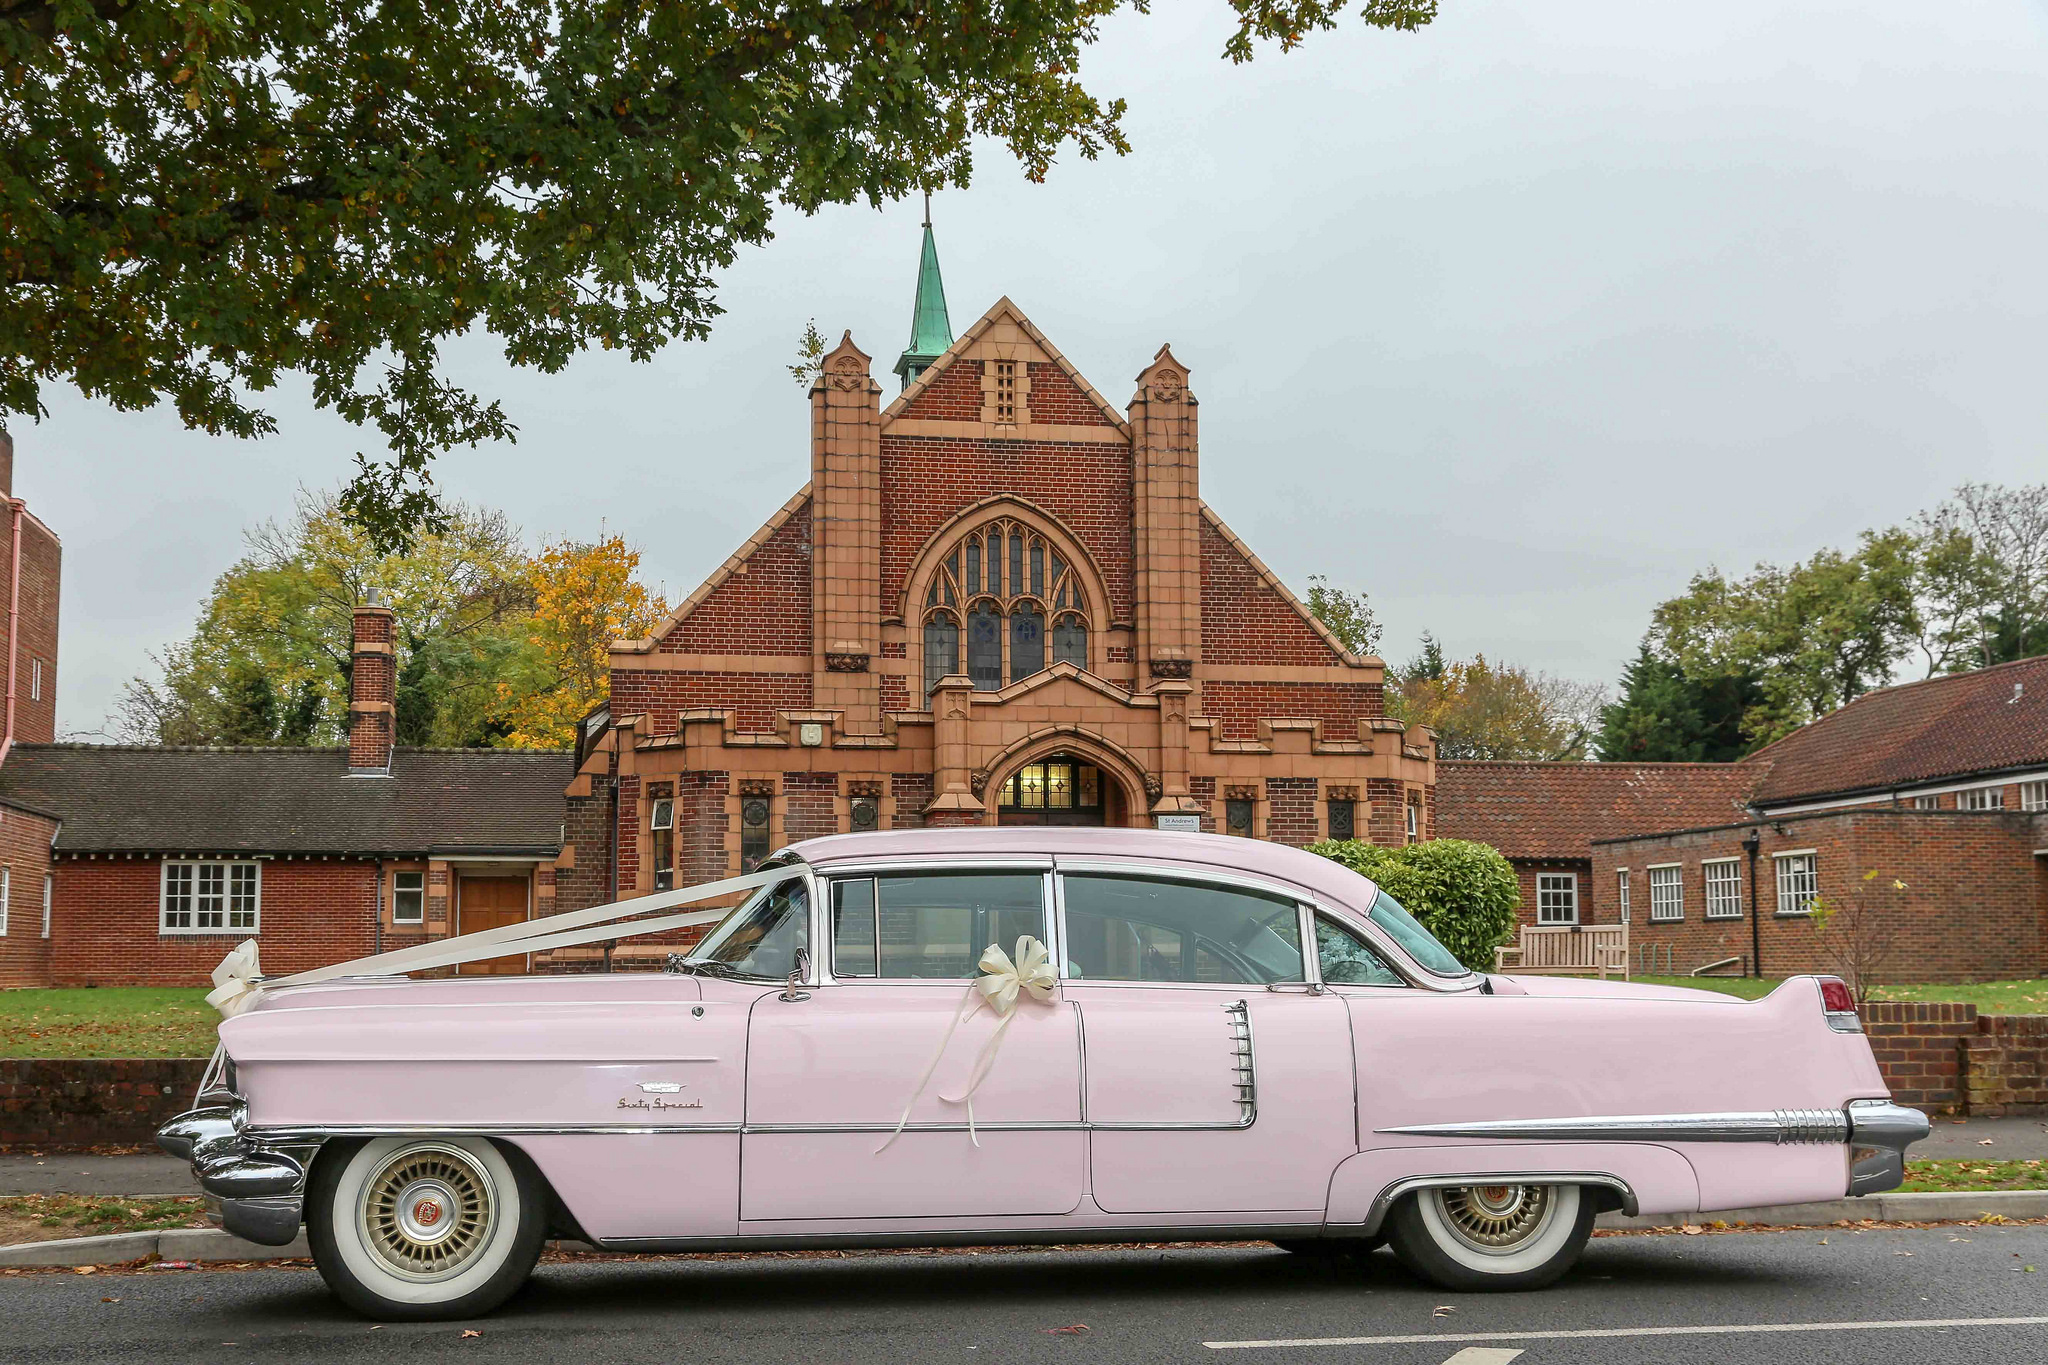 pink vintage cadillac car with white ribbons parked outside a church